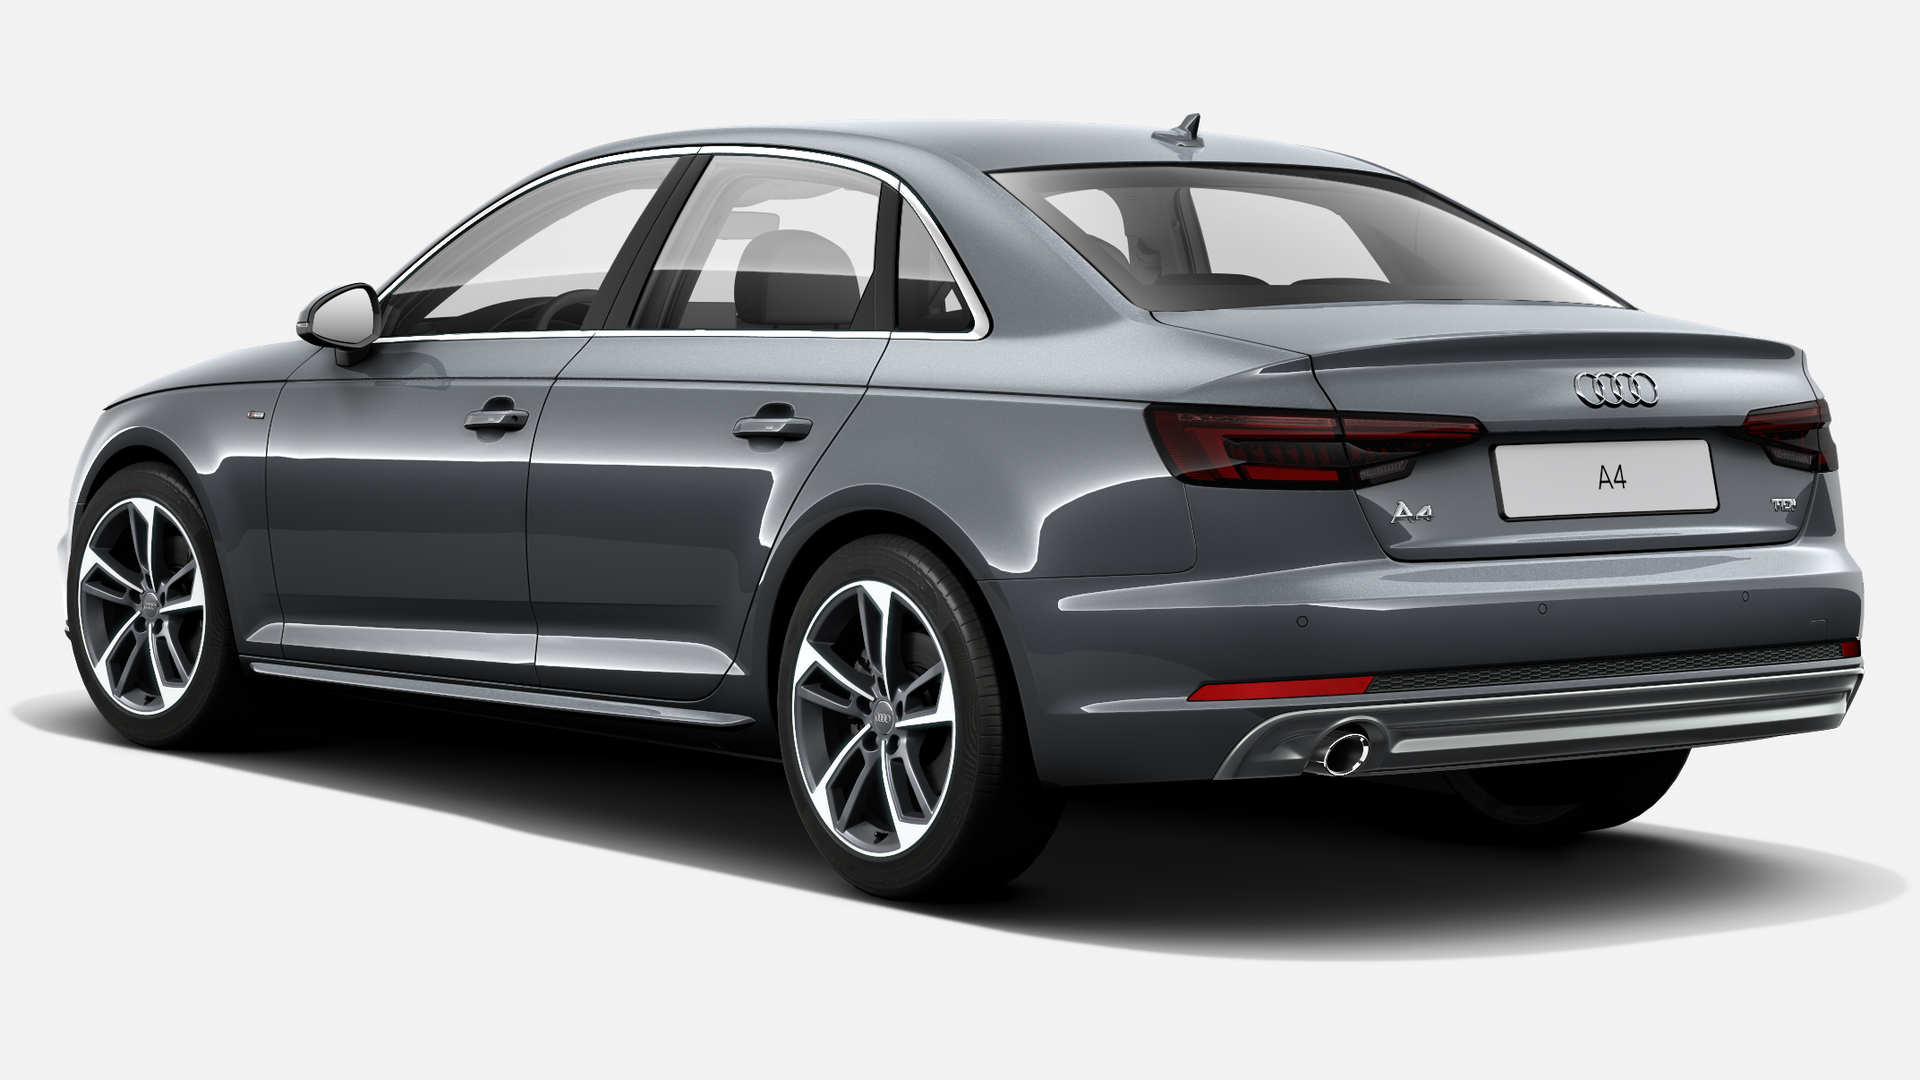 Audi A4 2.0 TDI S Line Edition S Tronic 110 kW (150 CV)